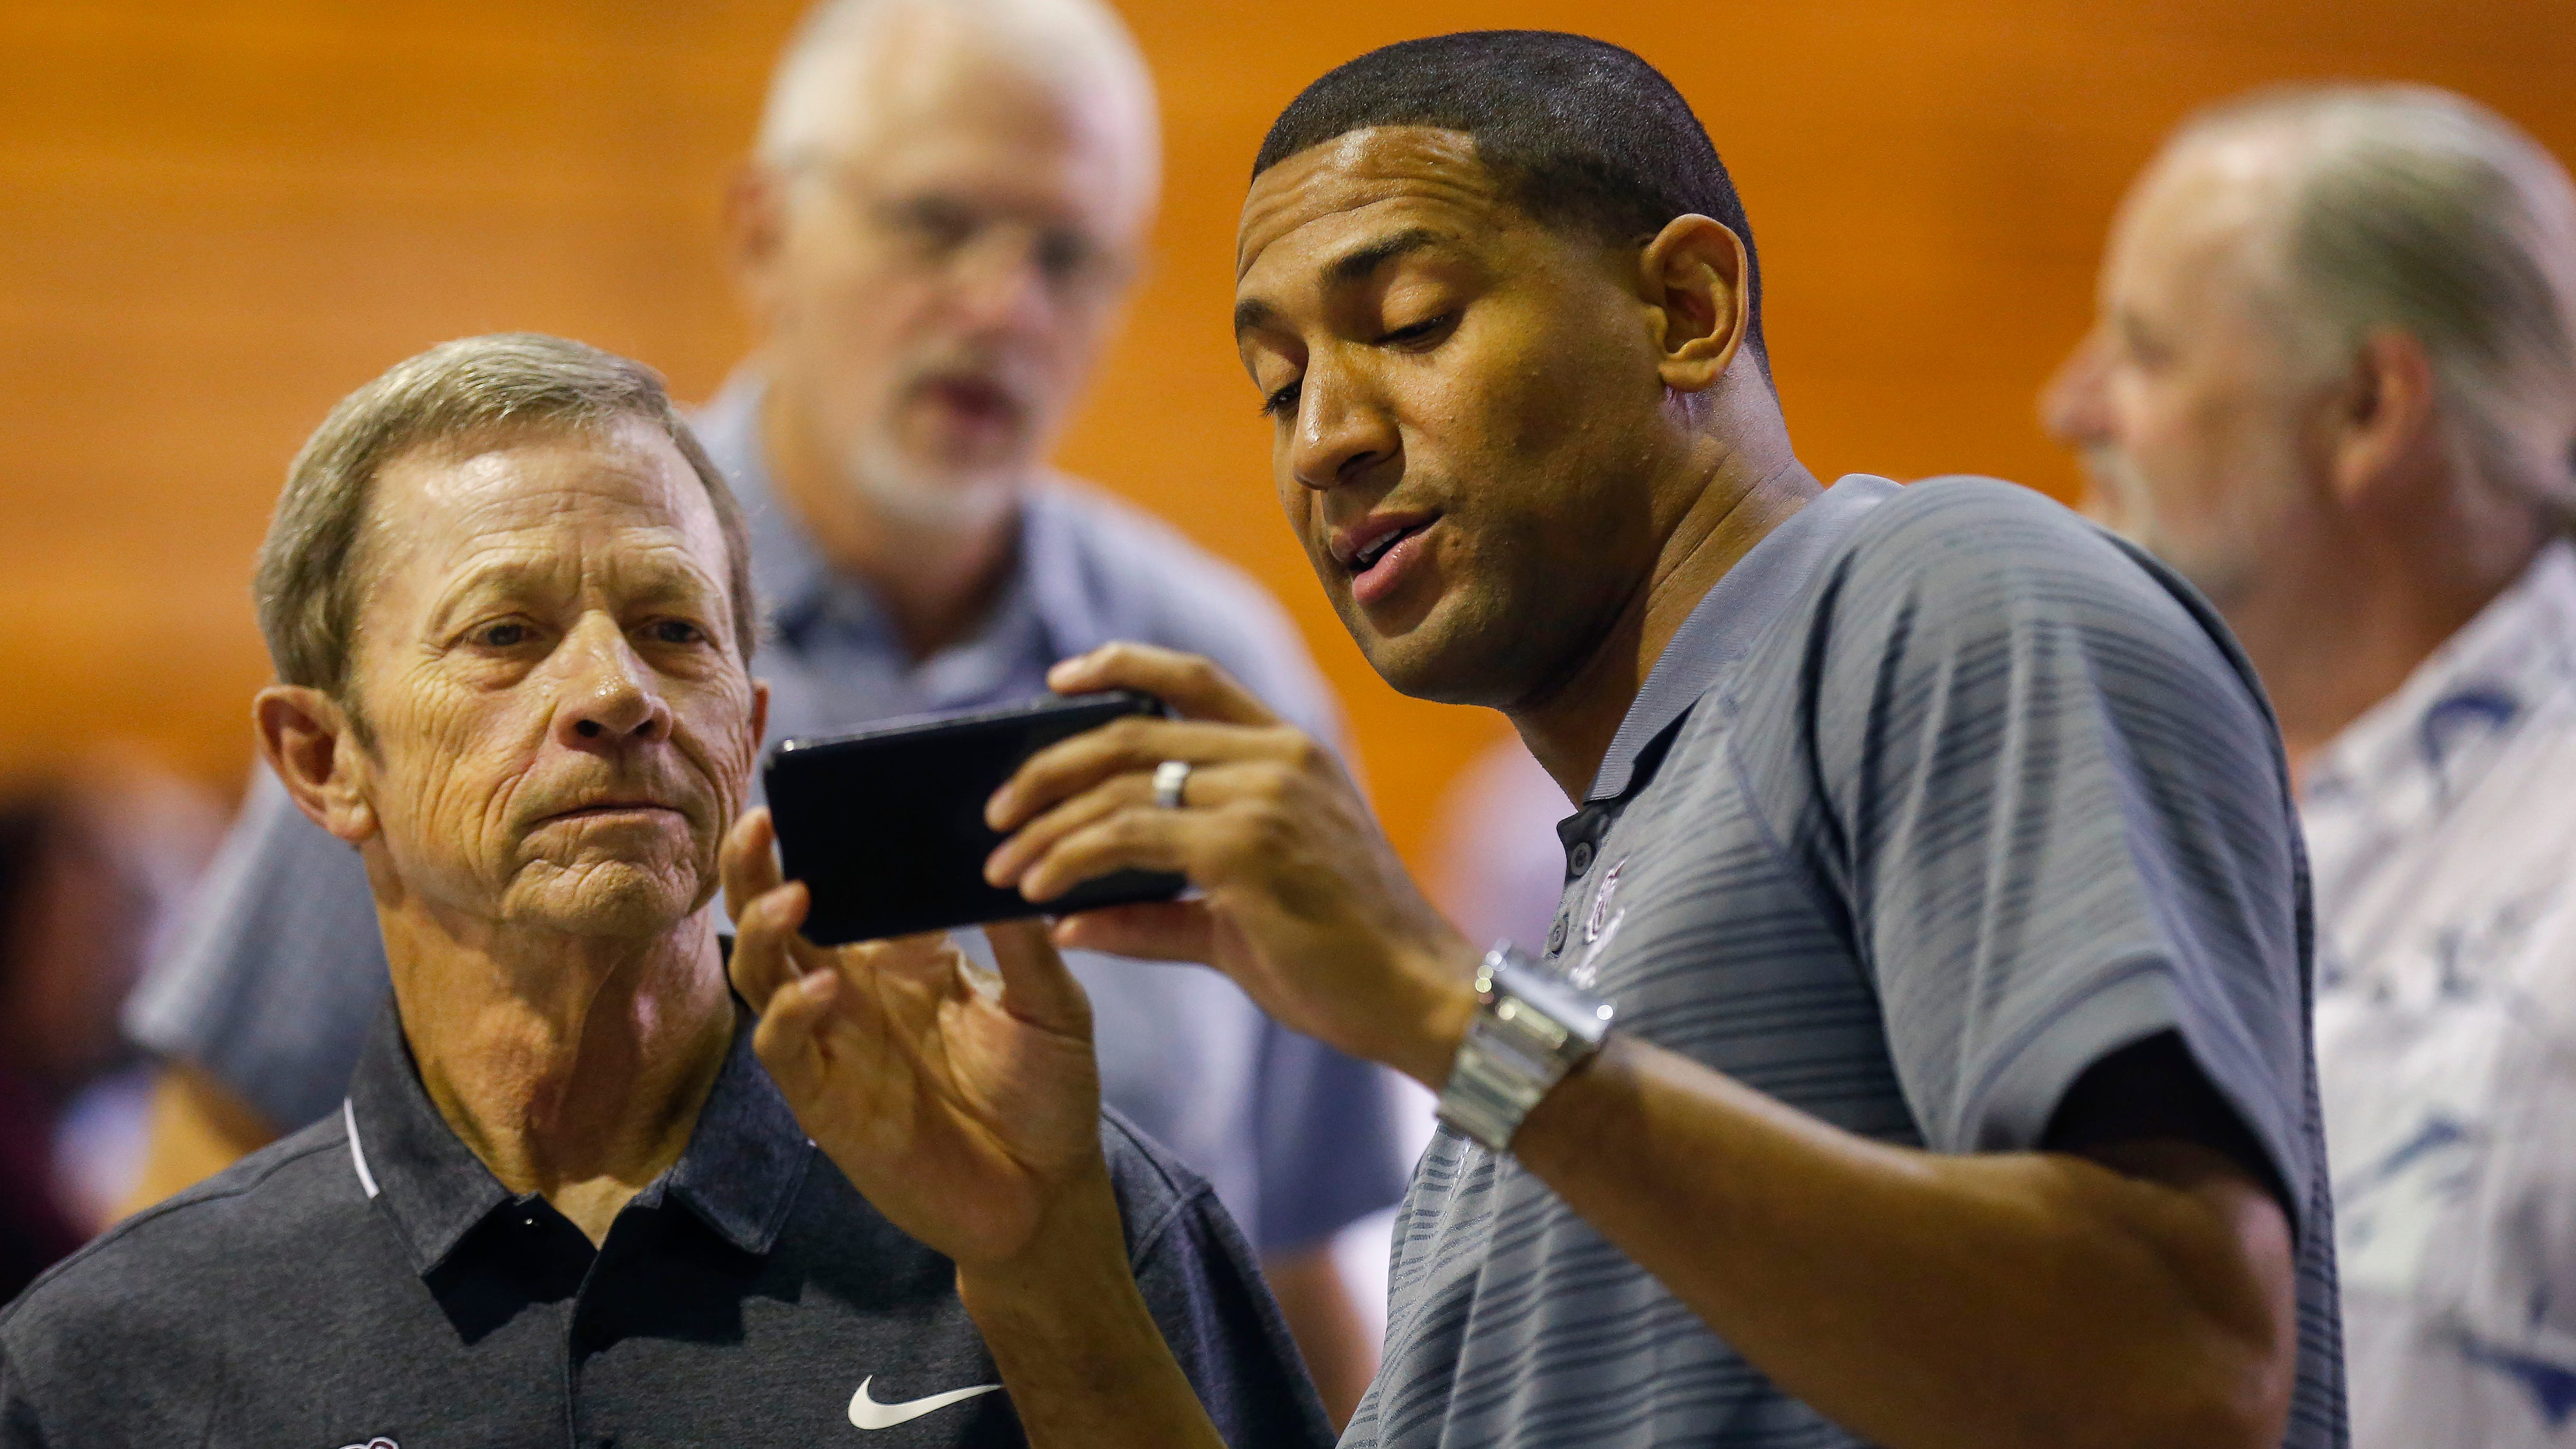 MSU head basketball coach Dana Ford, right, looks at Bill Kirkman's phone during the Sneaker Soiree at Hammons Student Center on Friday, Aug. 3, 2018.